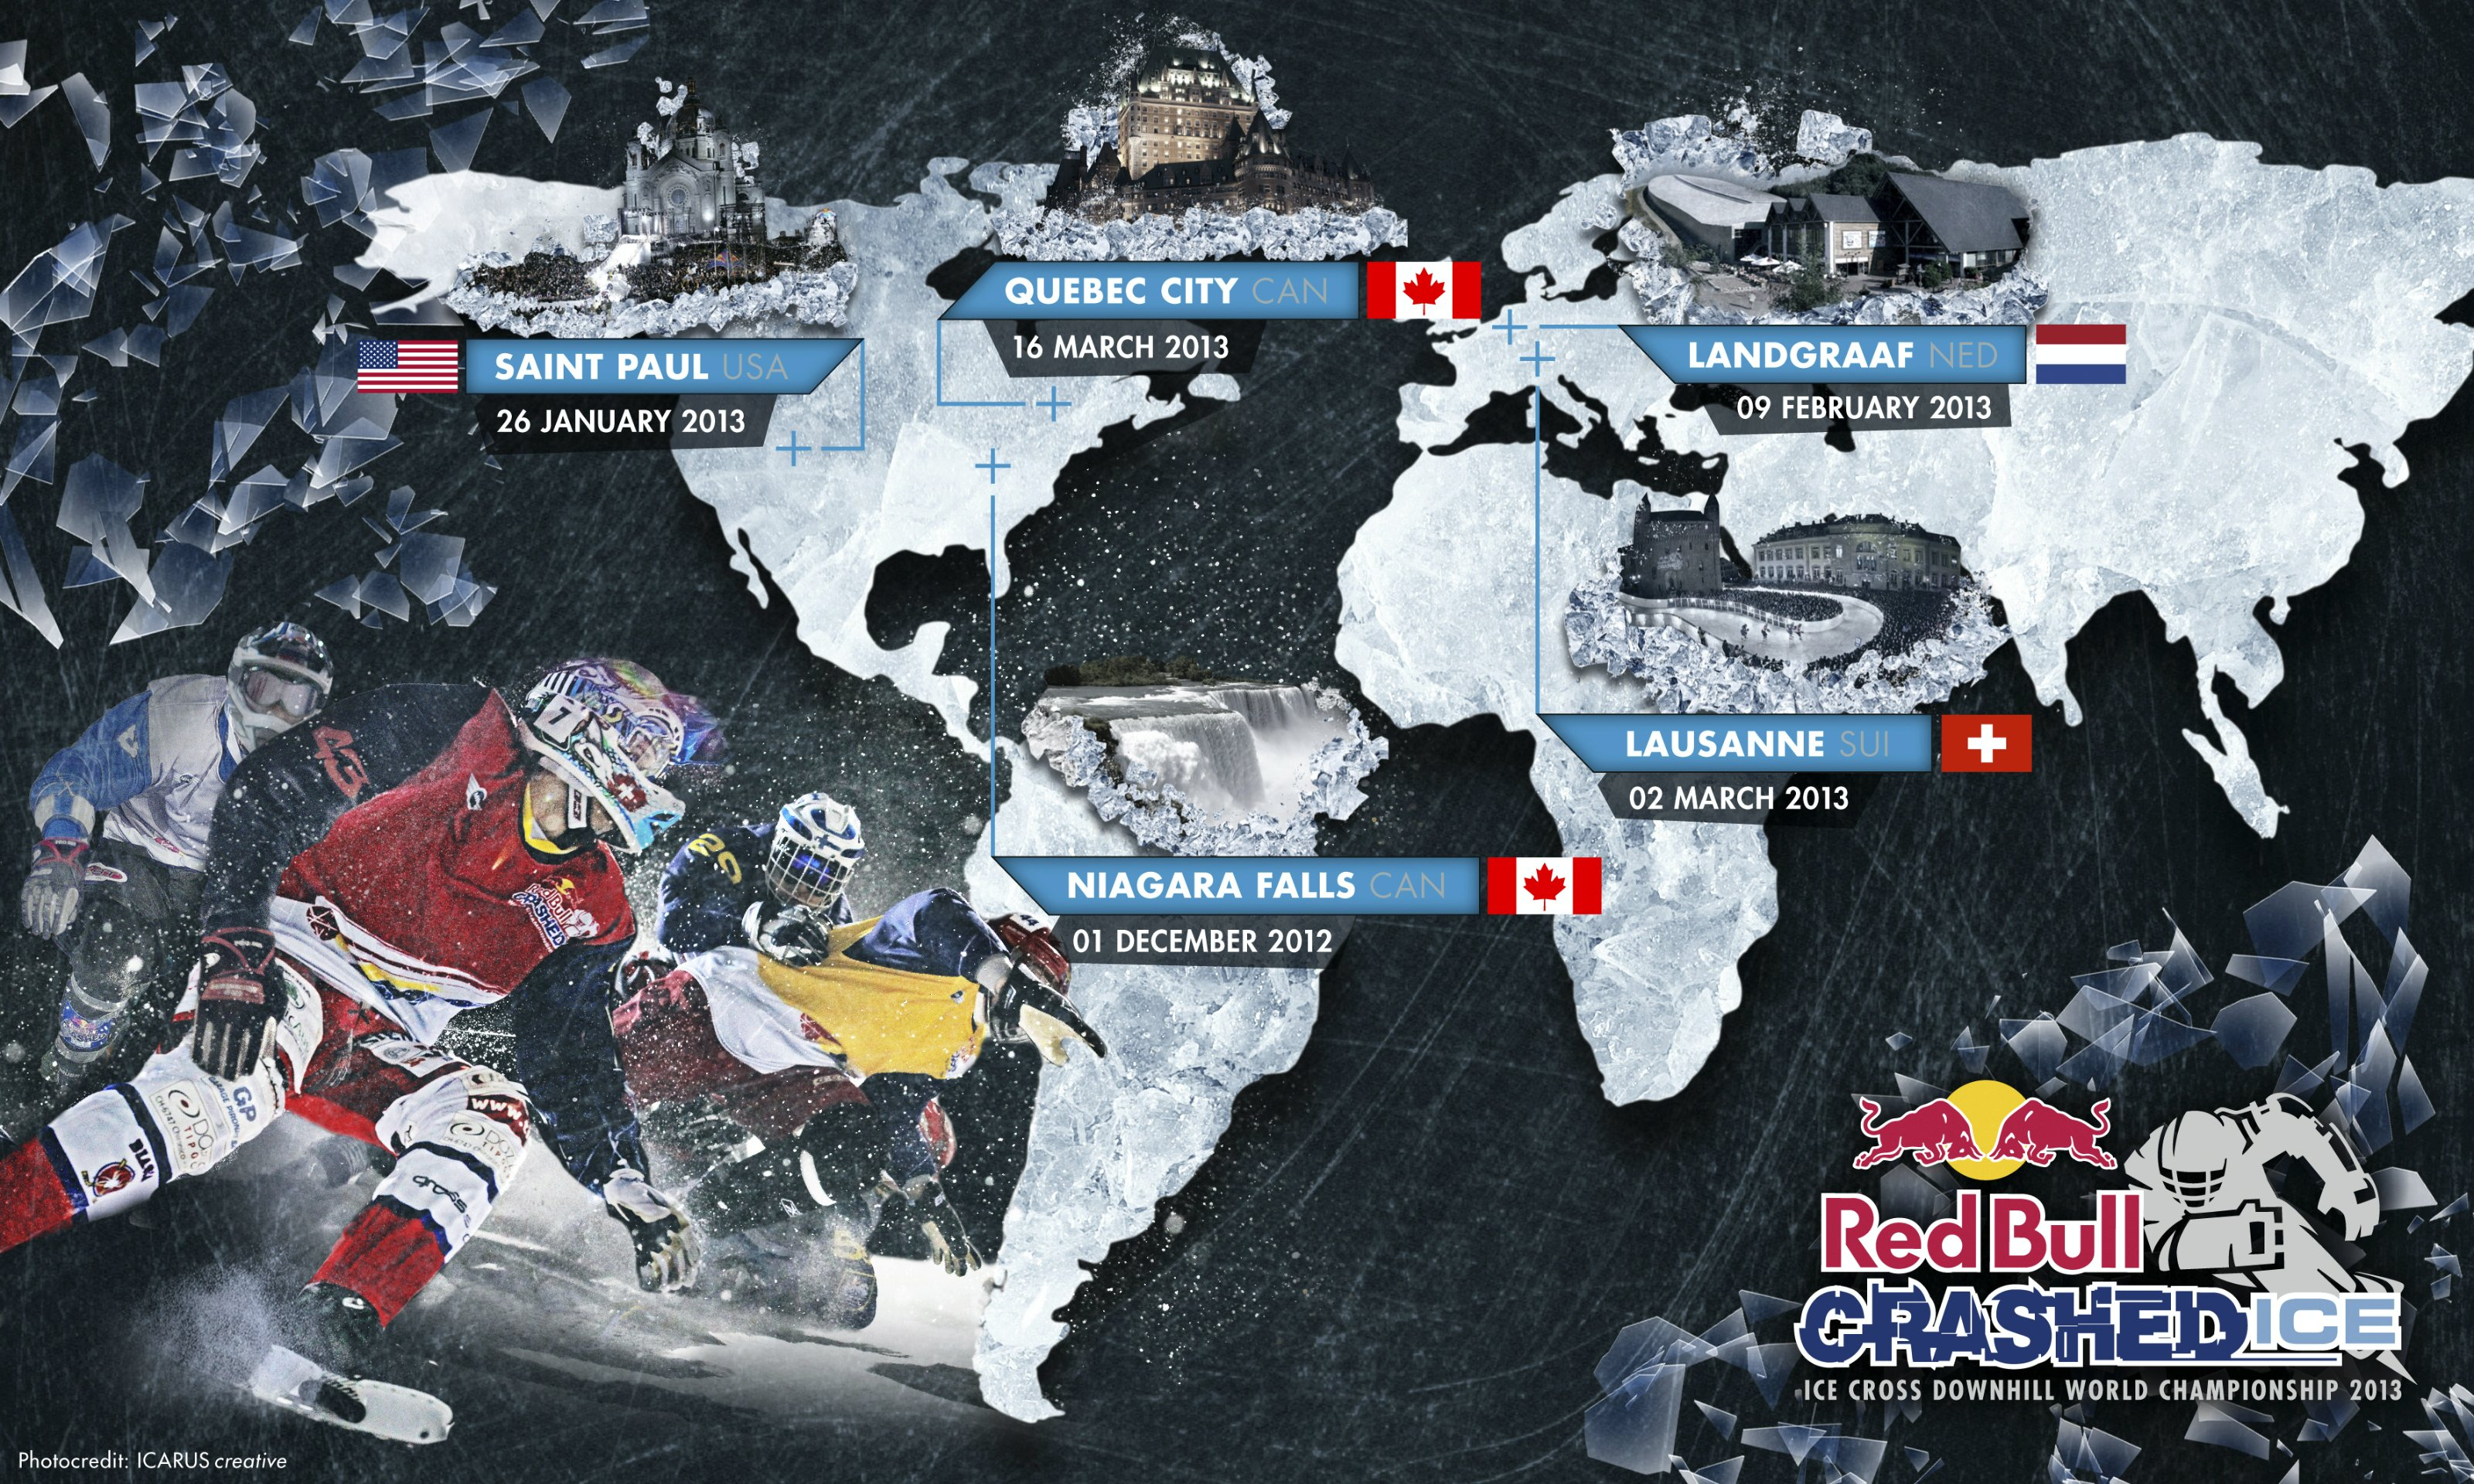 Red Bull Crashed Ice 2012-2013